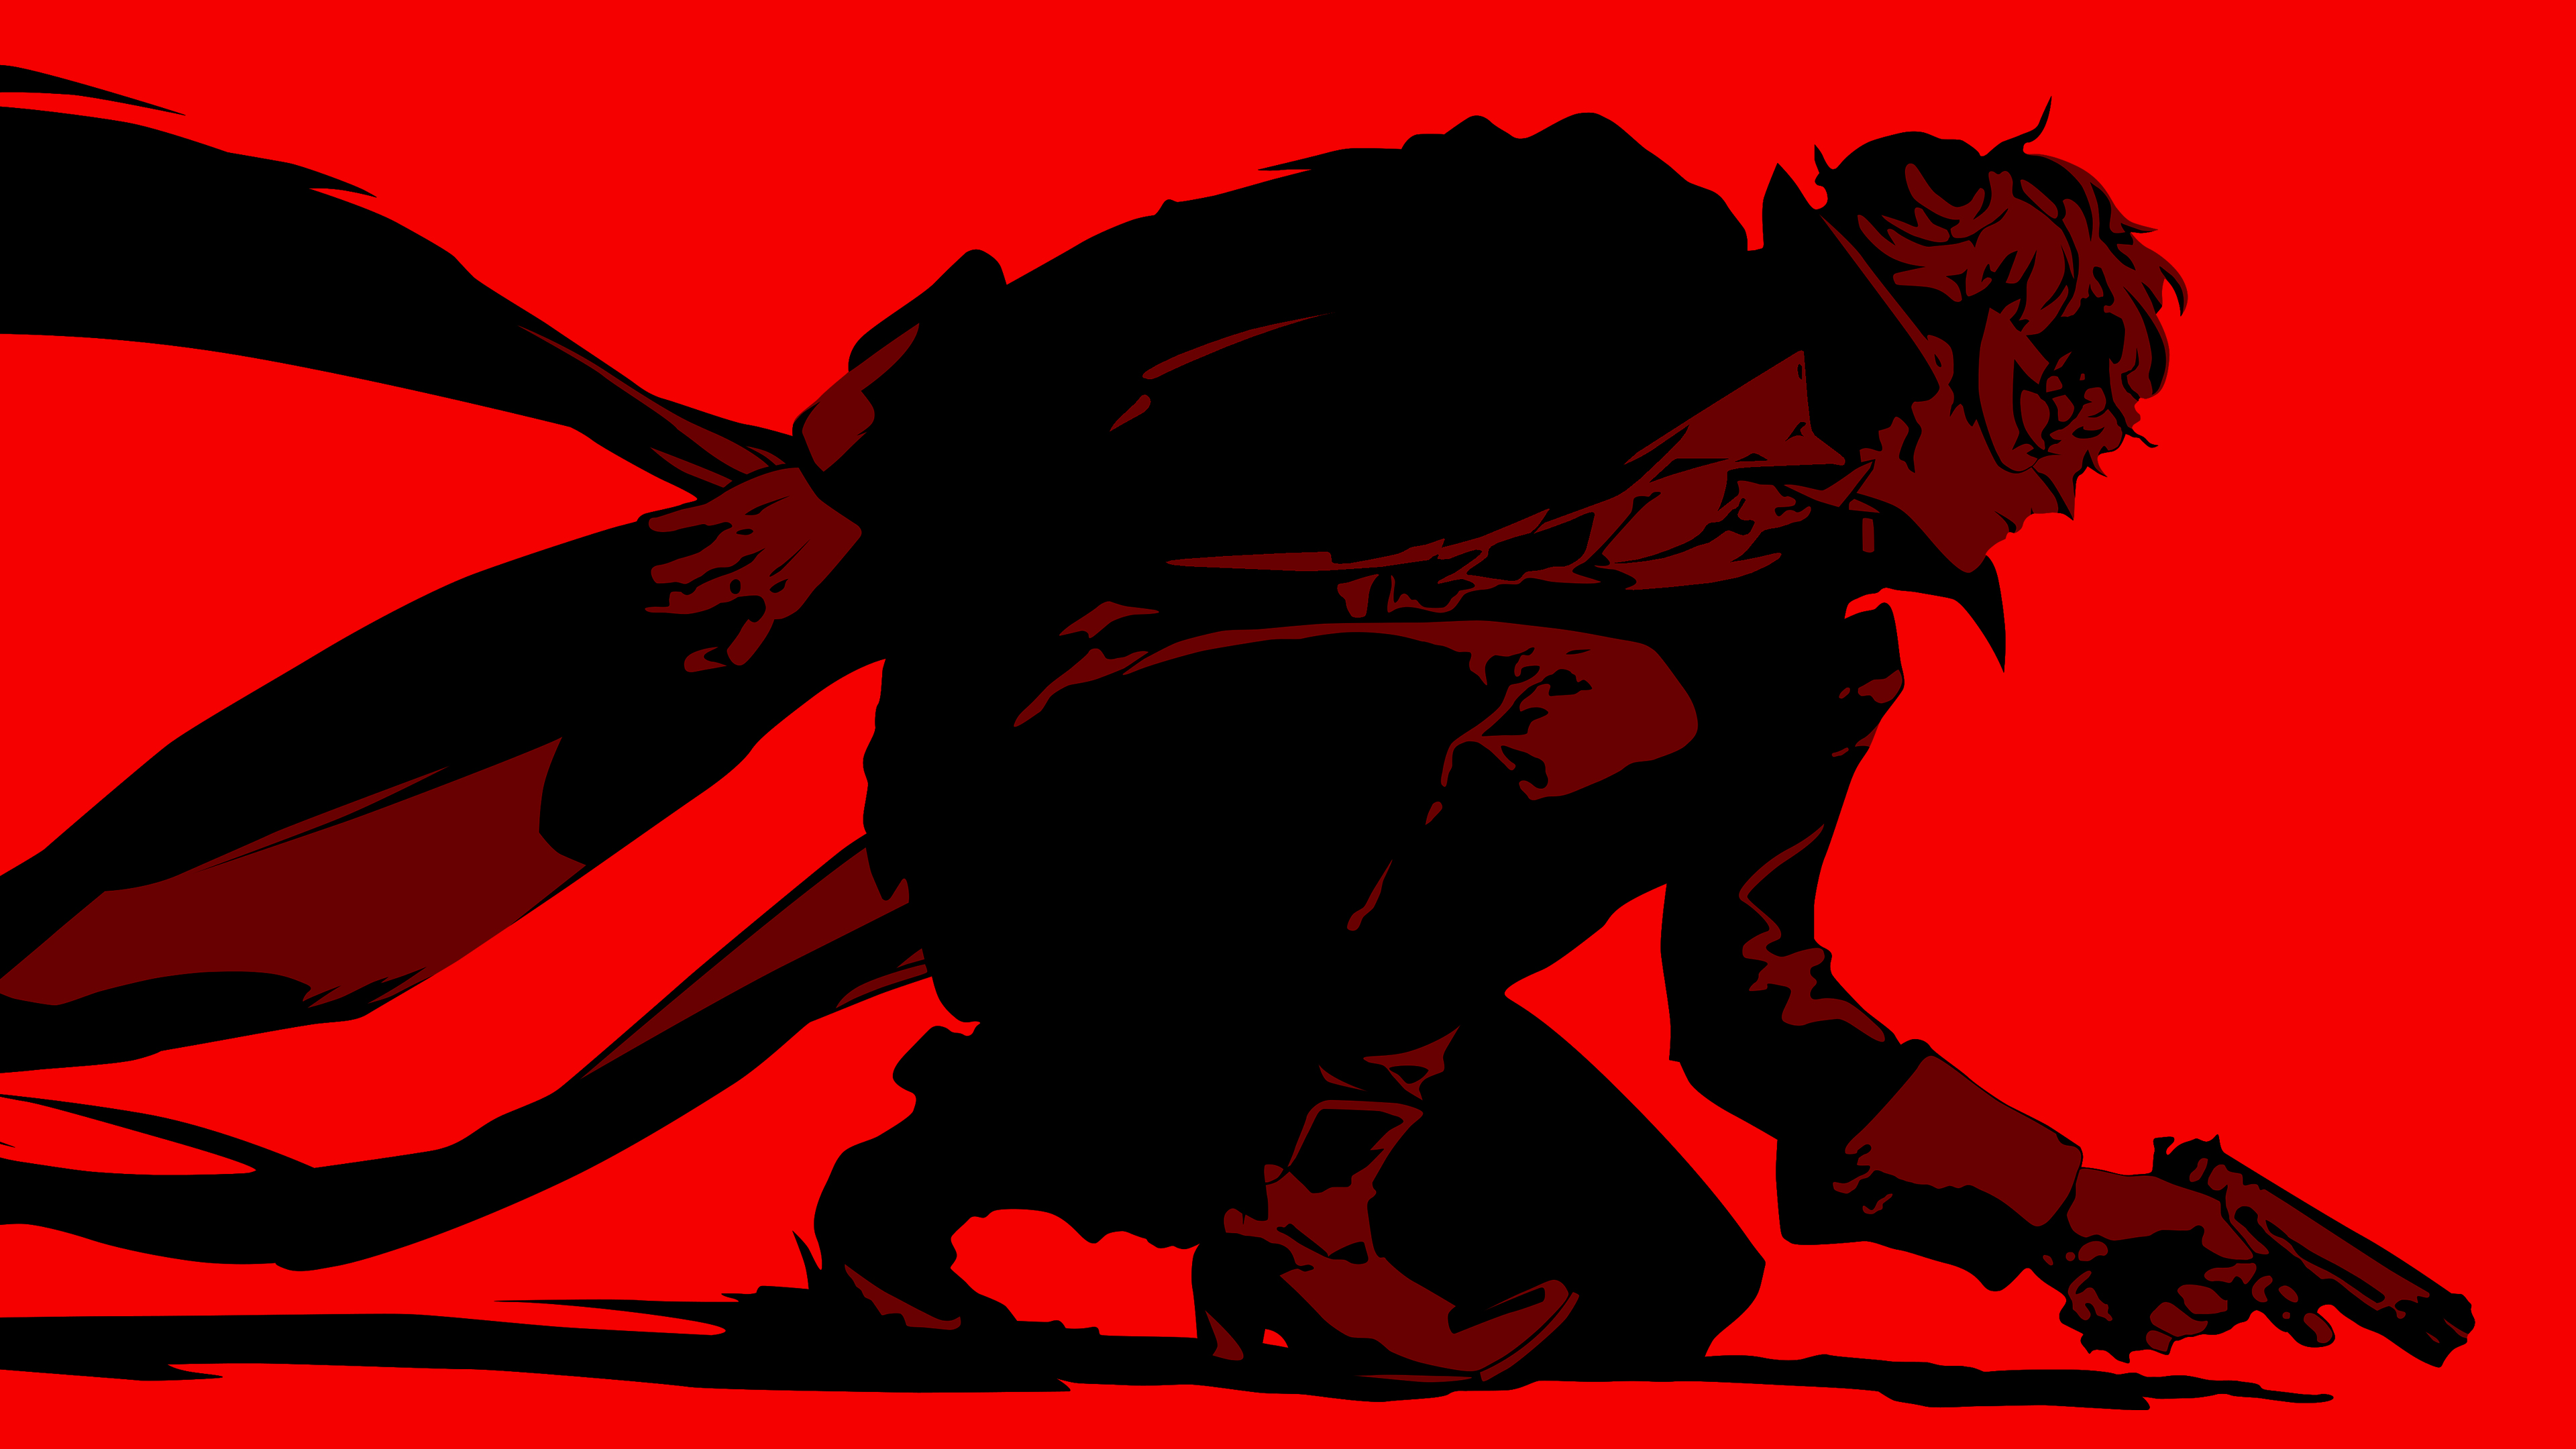 196 Persona 5 Hd Wallpapers Background Images Wallpaper Abyss